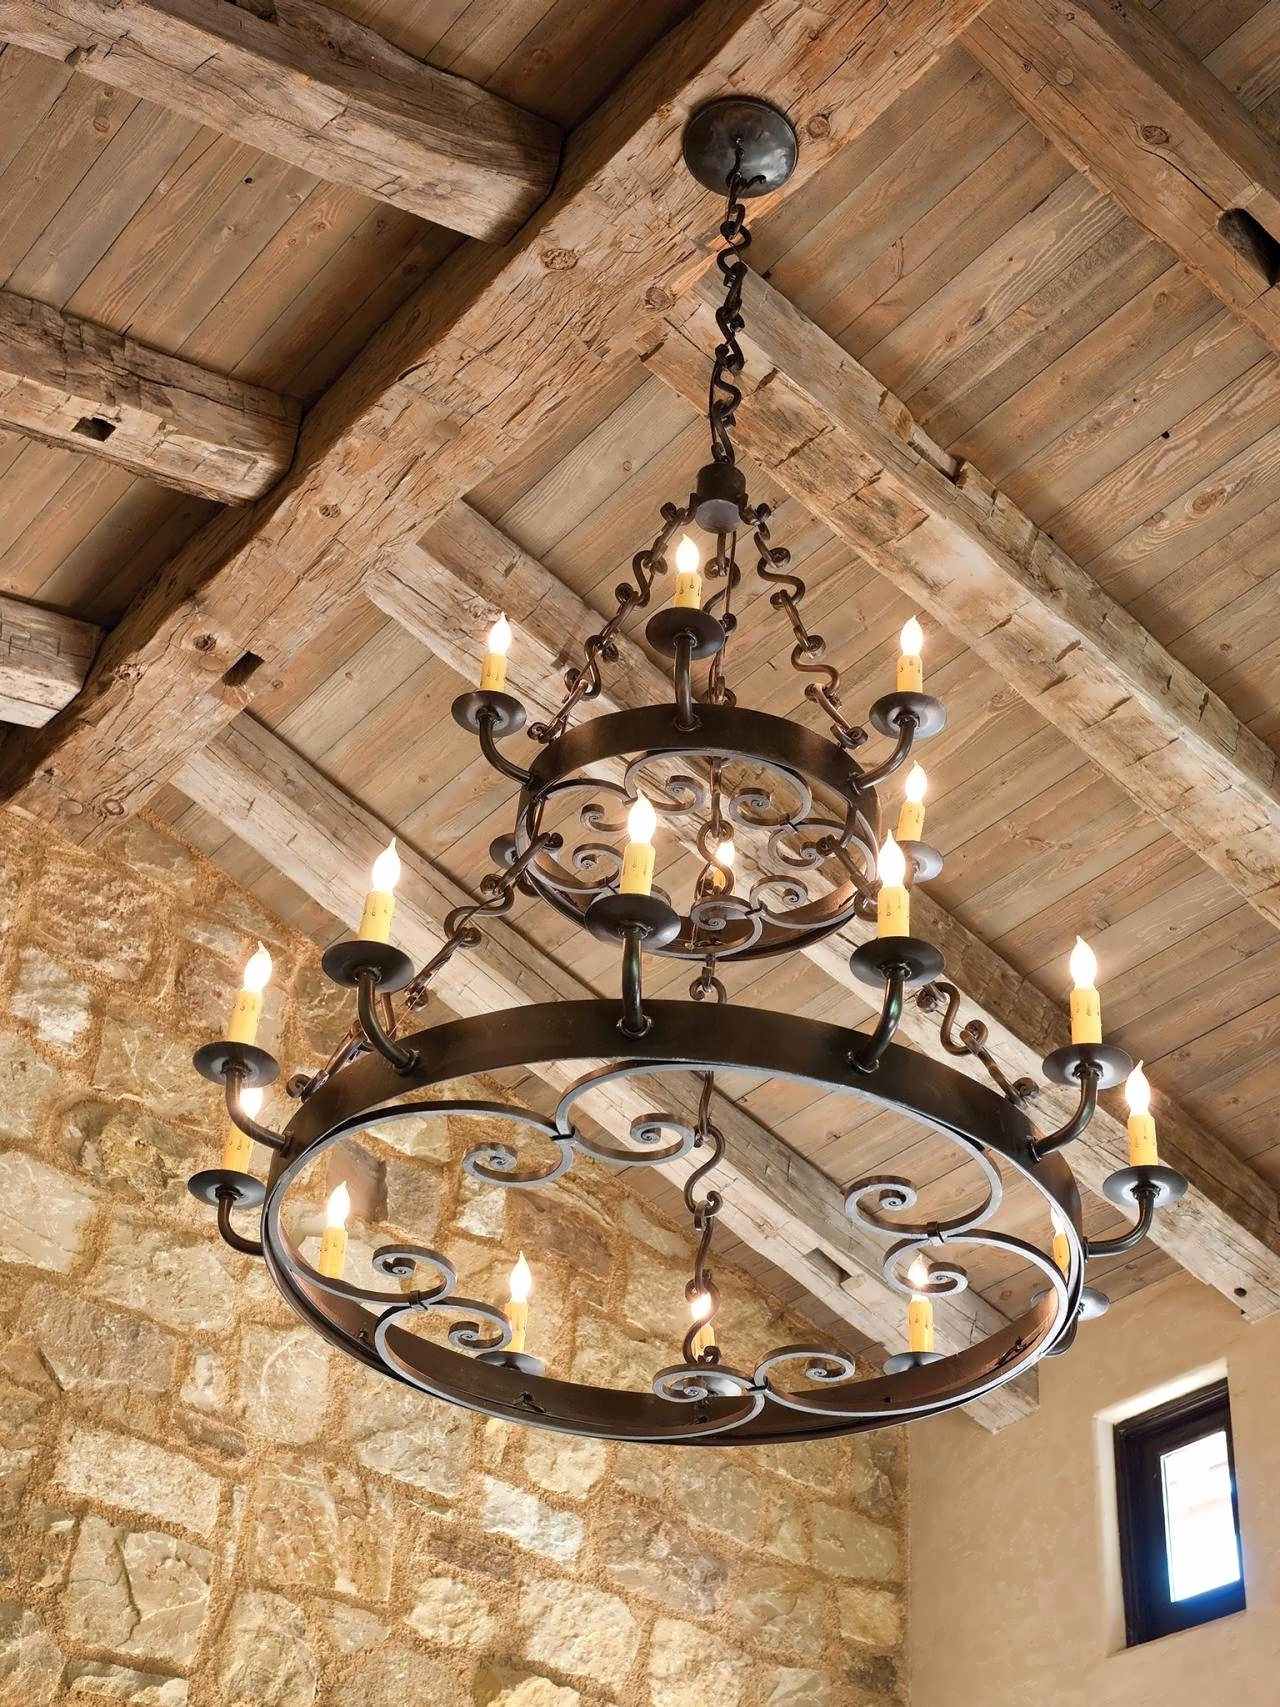 Chandeliers : Small Rustic Chandelier Awesome Small Rustic For Most Current Small Rustic Chandeliers (View 3 of 20)